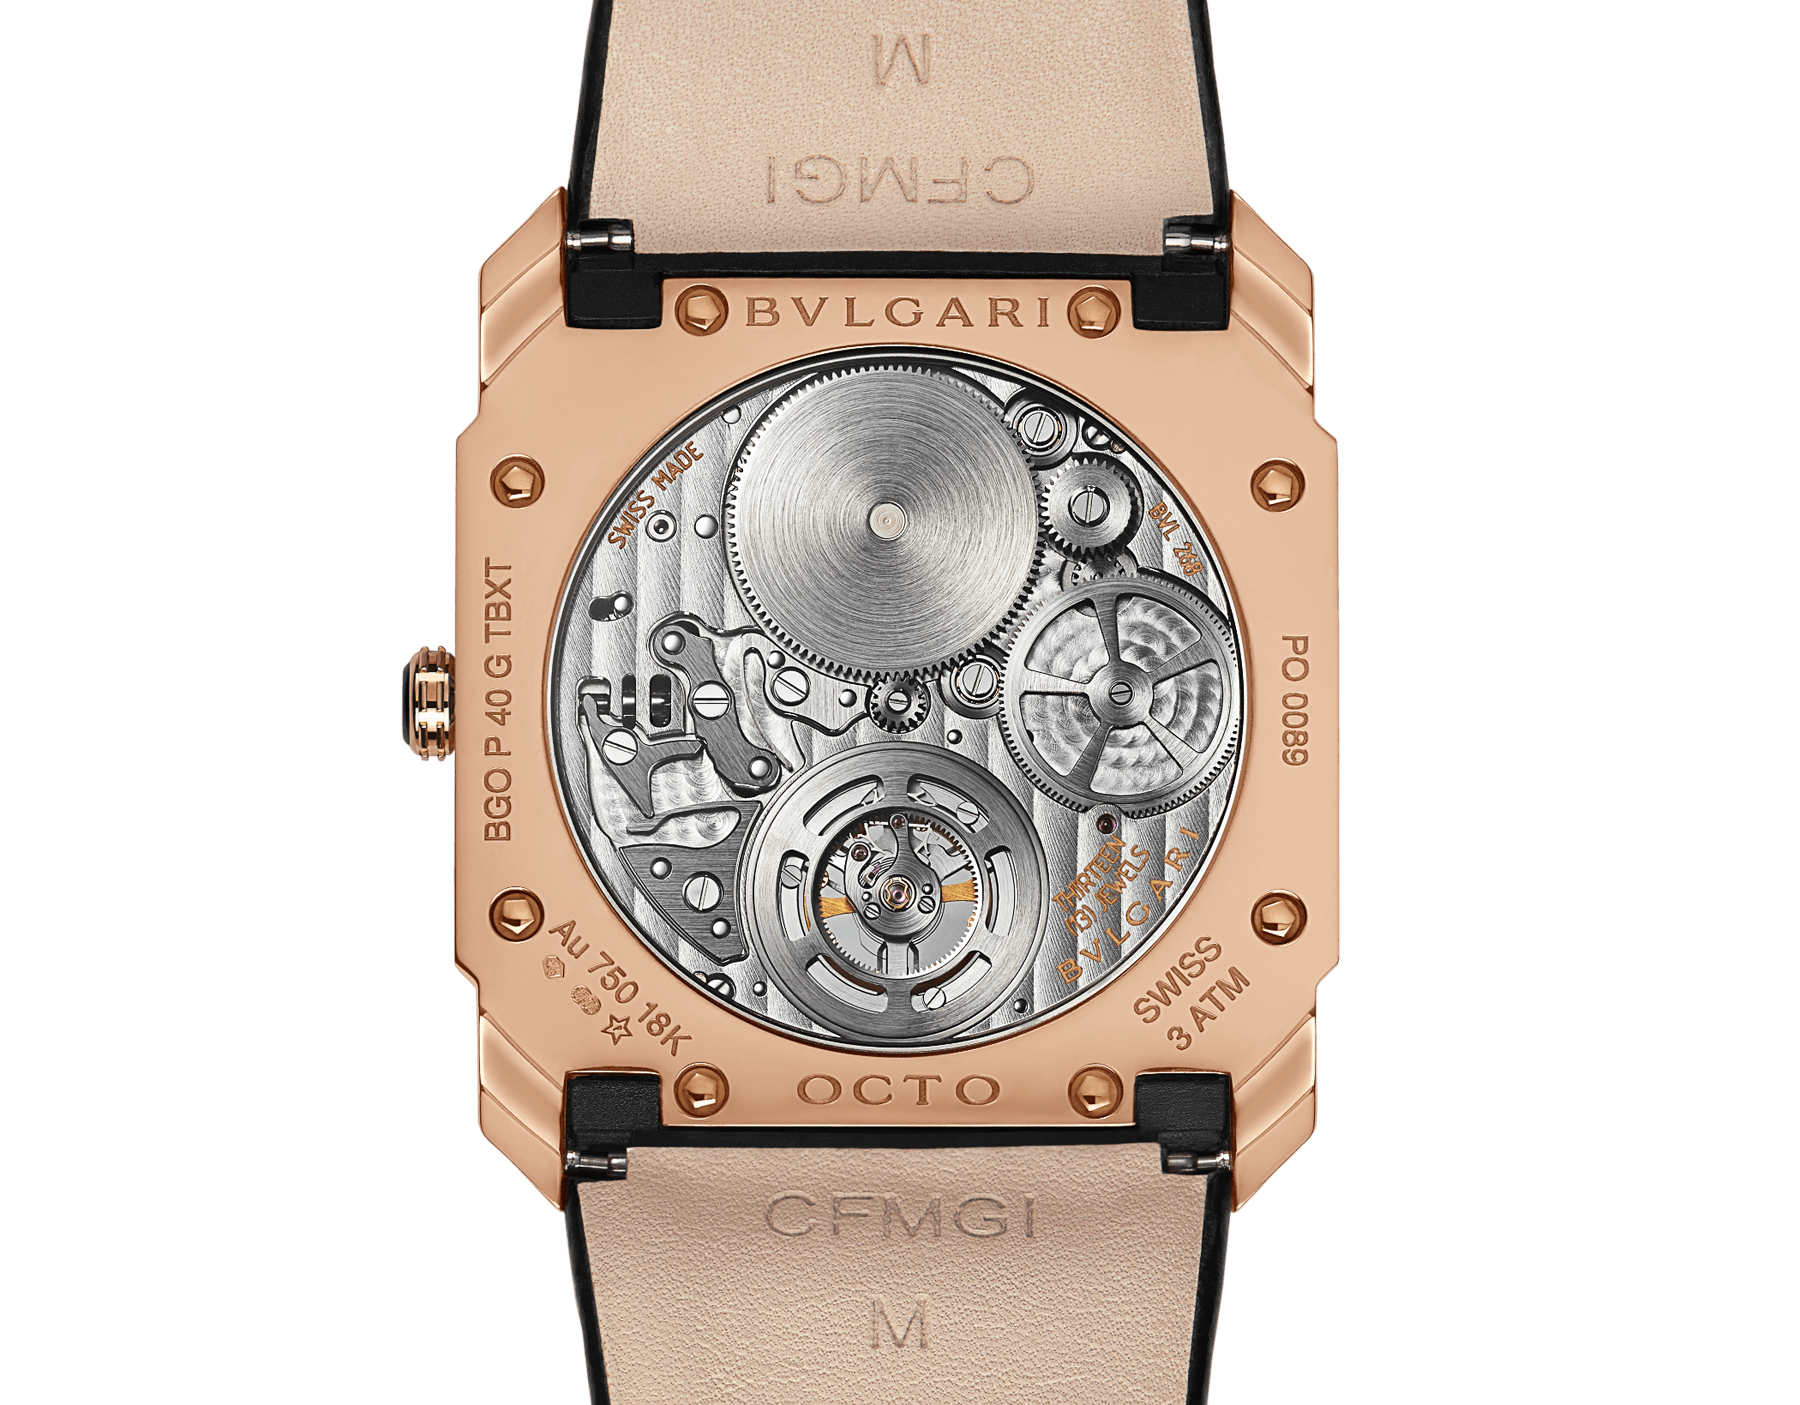 Octo Finissimo Tourbillon watch with extra thin mechanical manufacture movement, manual winding and ball-bearing system, 18 kt rose gold case, black lacquered dial with tourbillon see-through opening and black alligator bracelet. 102346 image 4